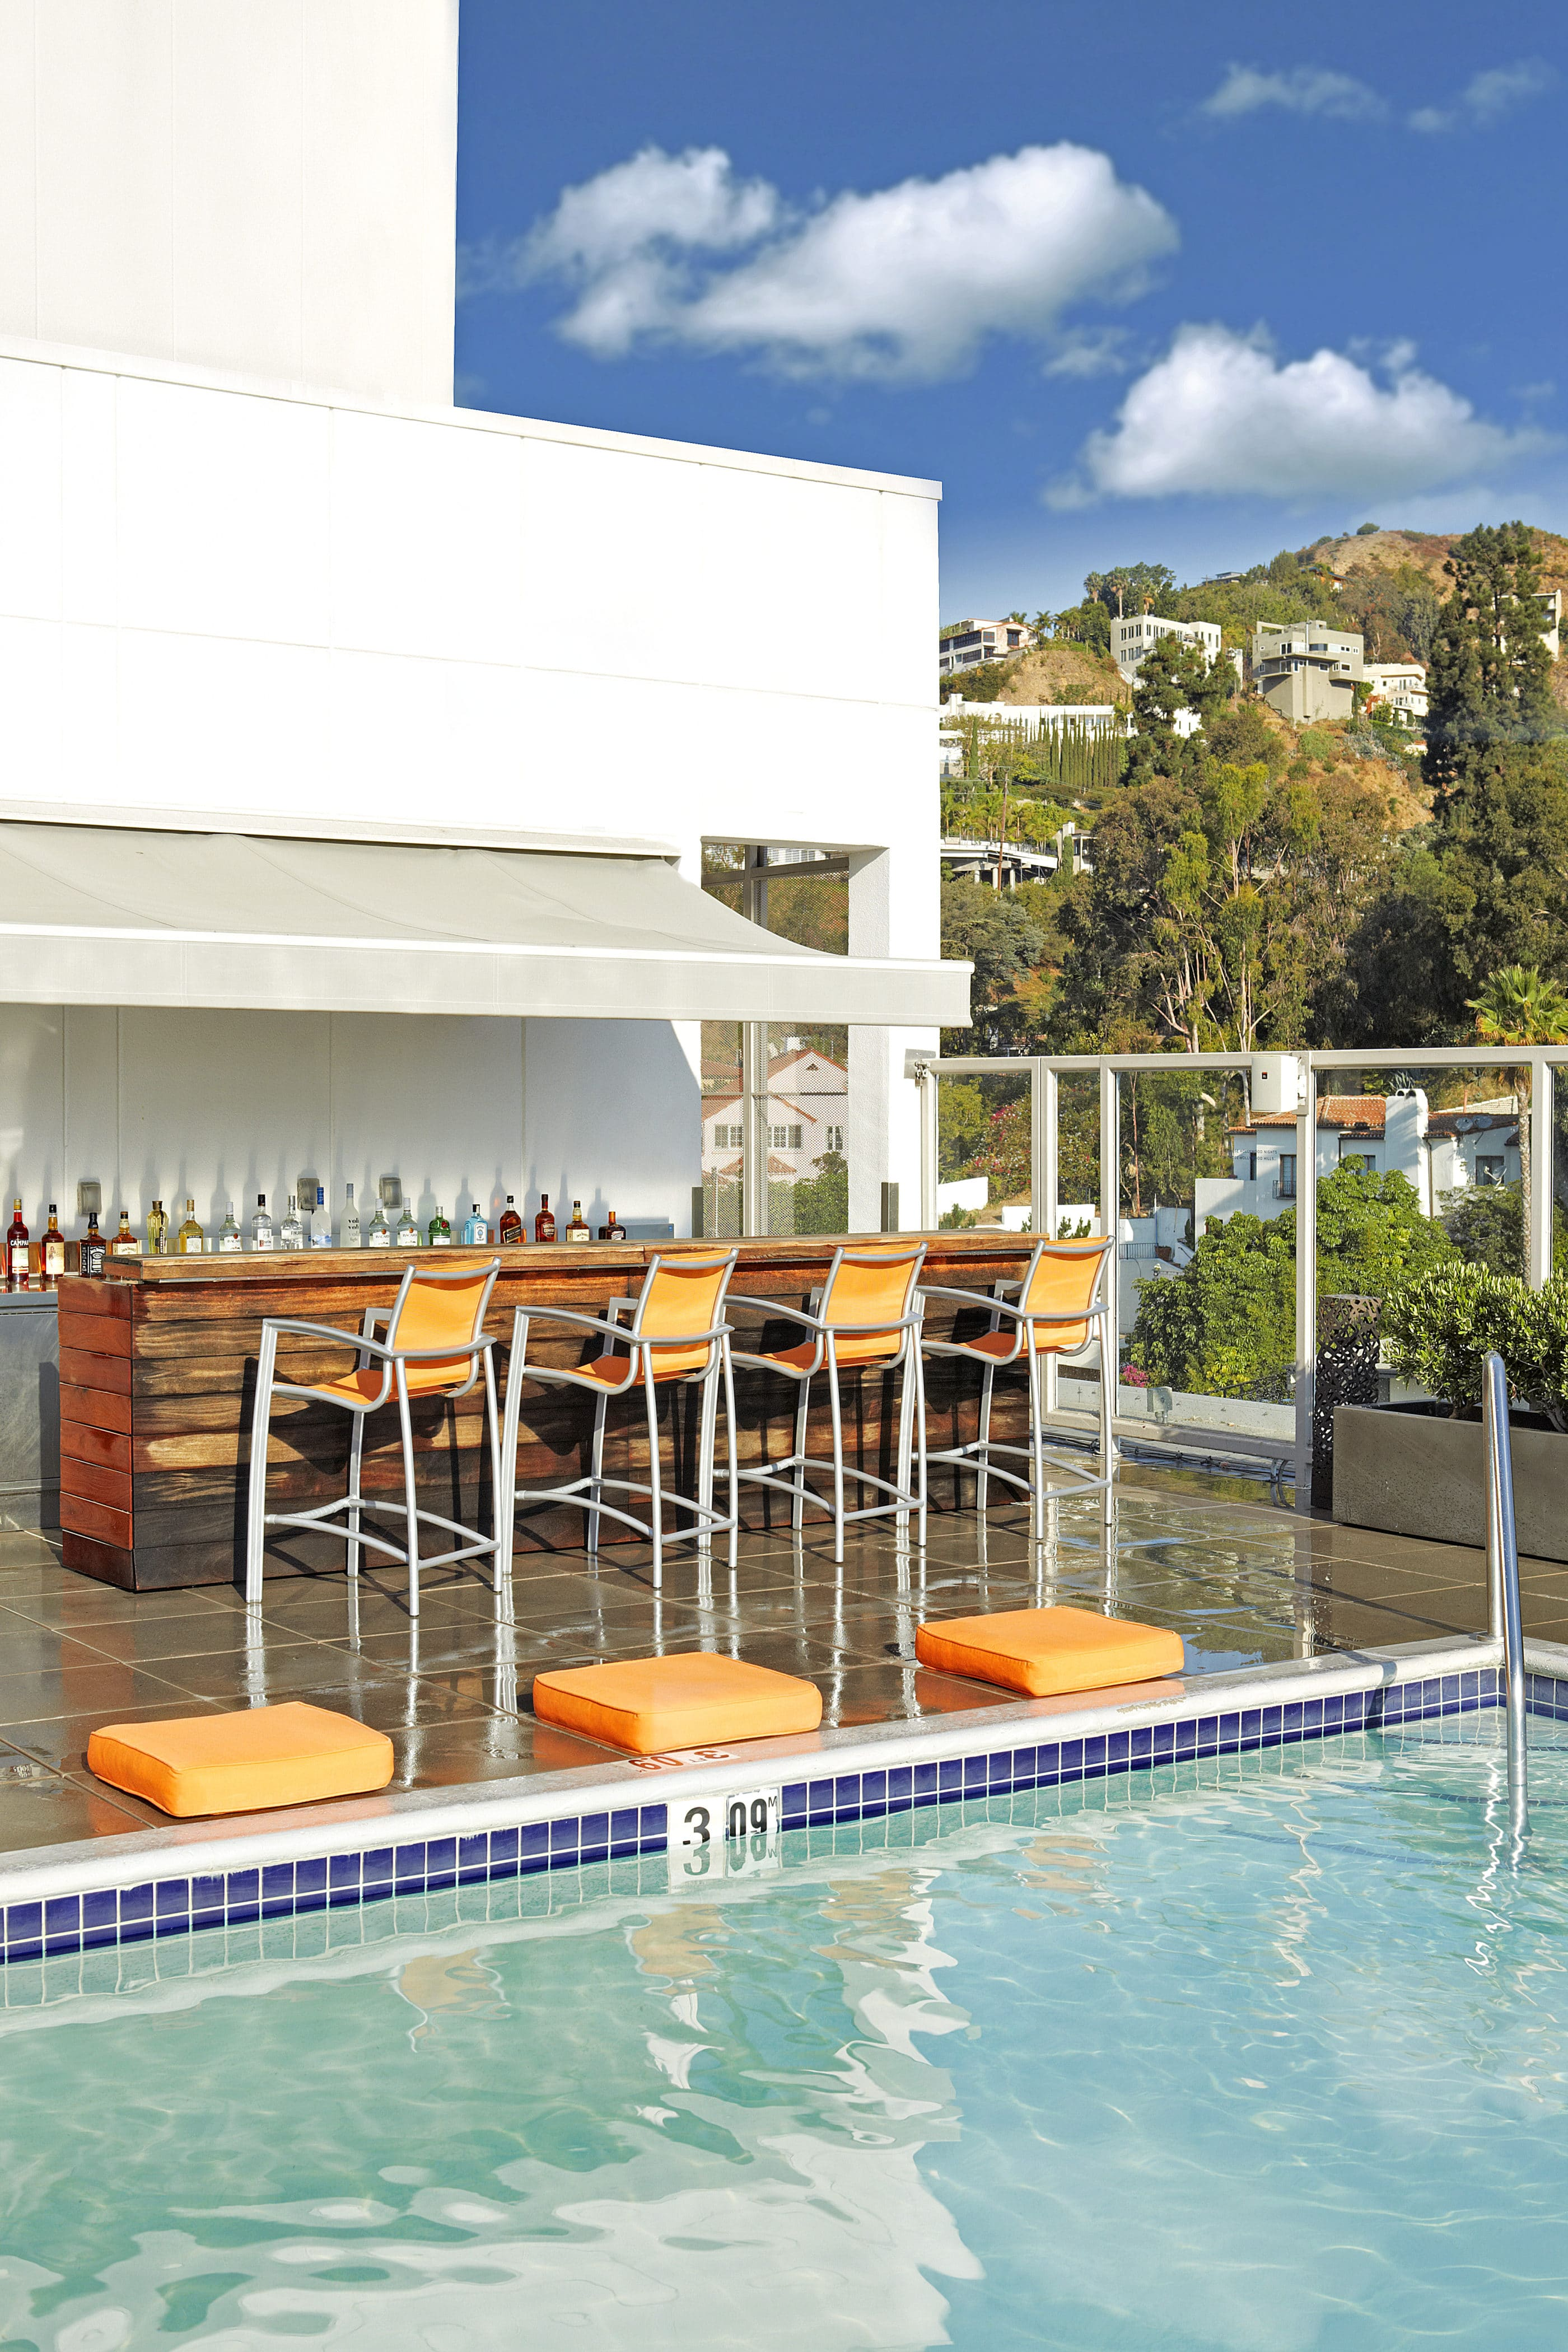 The chic pool bar with orange barstool chairs near the water's edge.